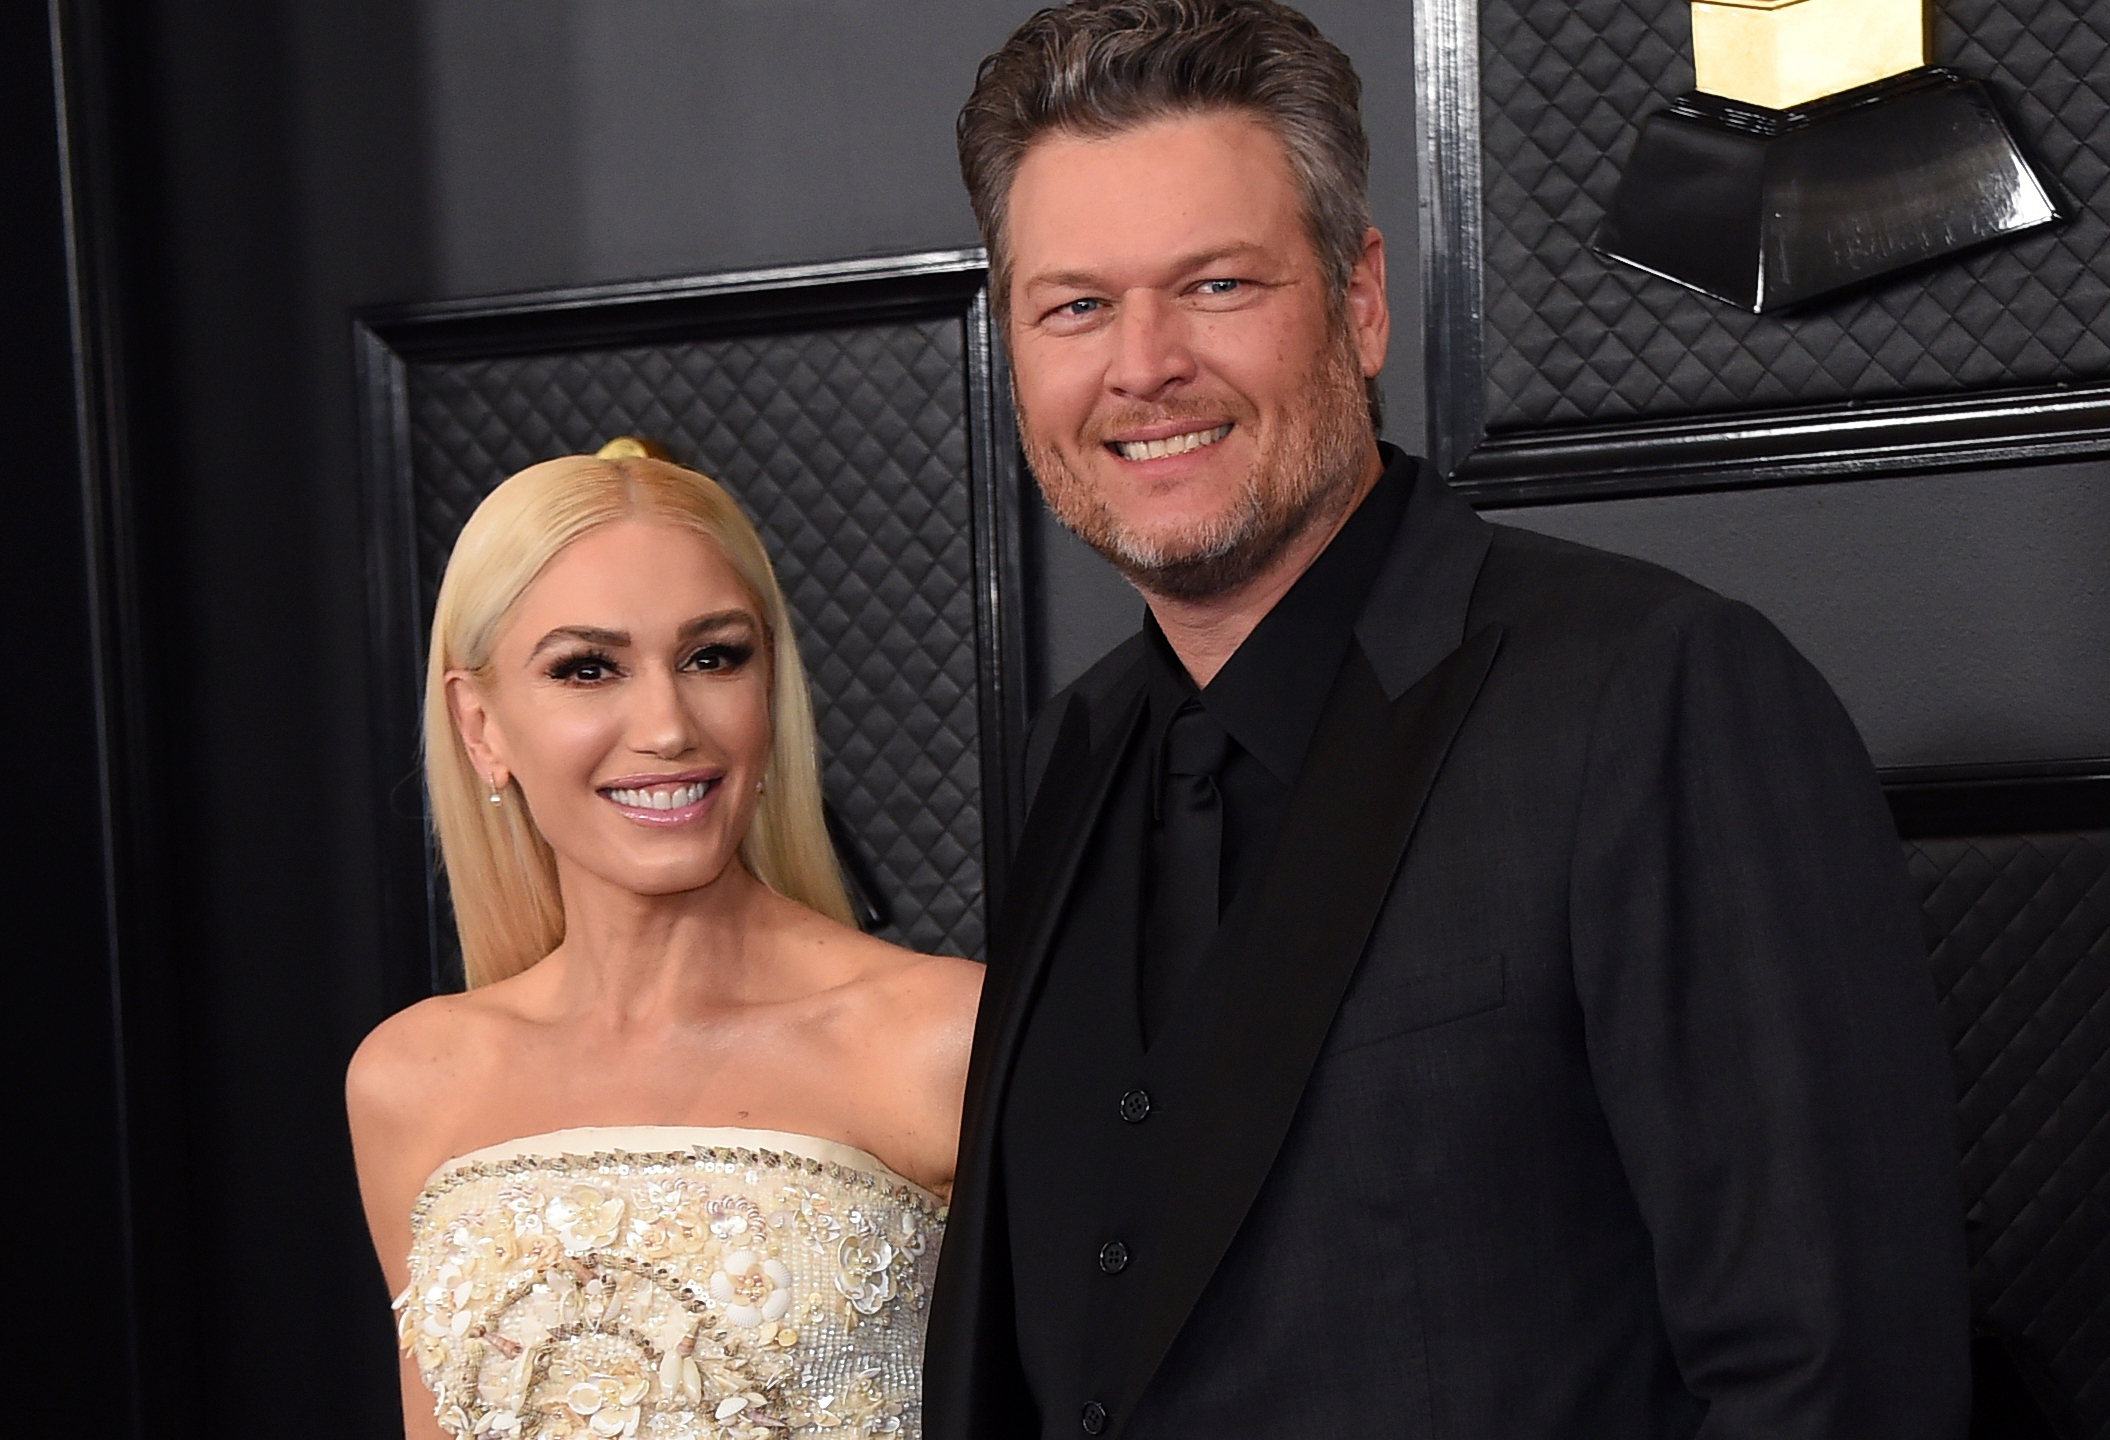 In this Jan. 26, 2020, file photo, Gwen Stefani, left, and Blake Shelton arrive at the 62nd annual Grammy Awards in Los Angeles. (Jordan Strauss/Invision/AP, File)